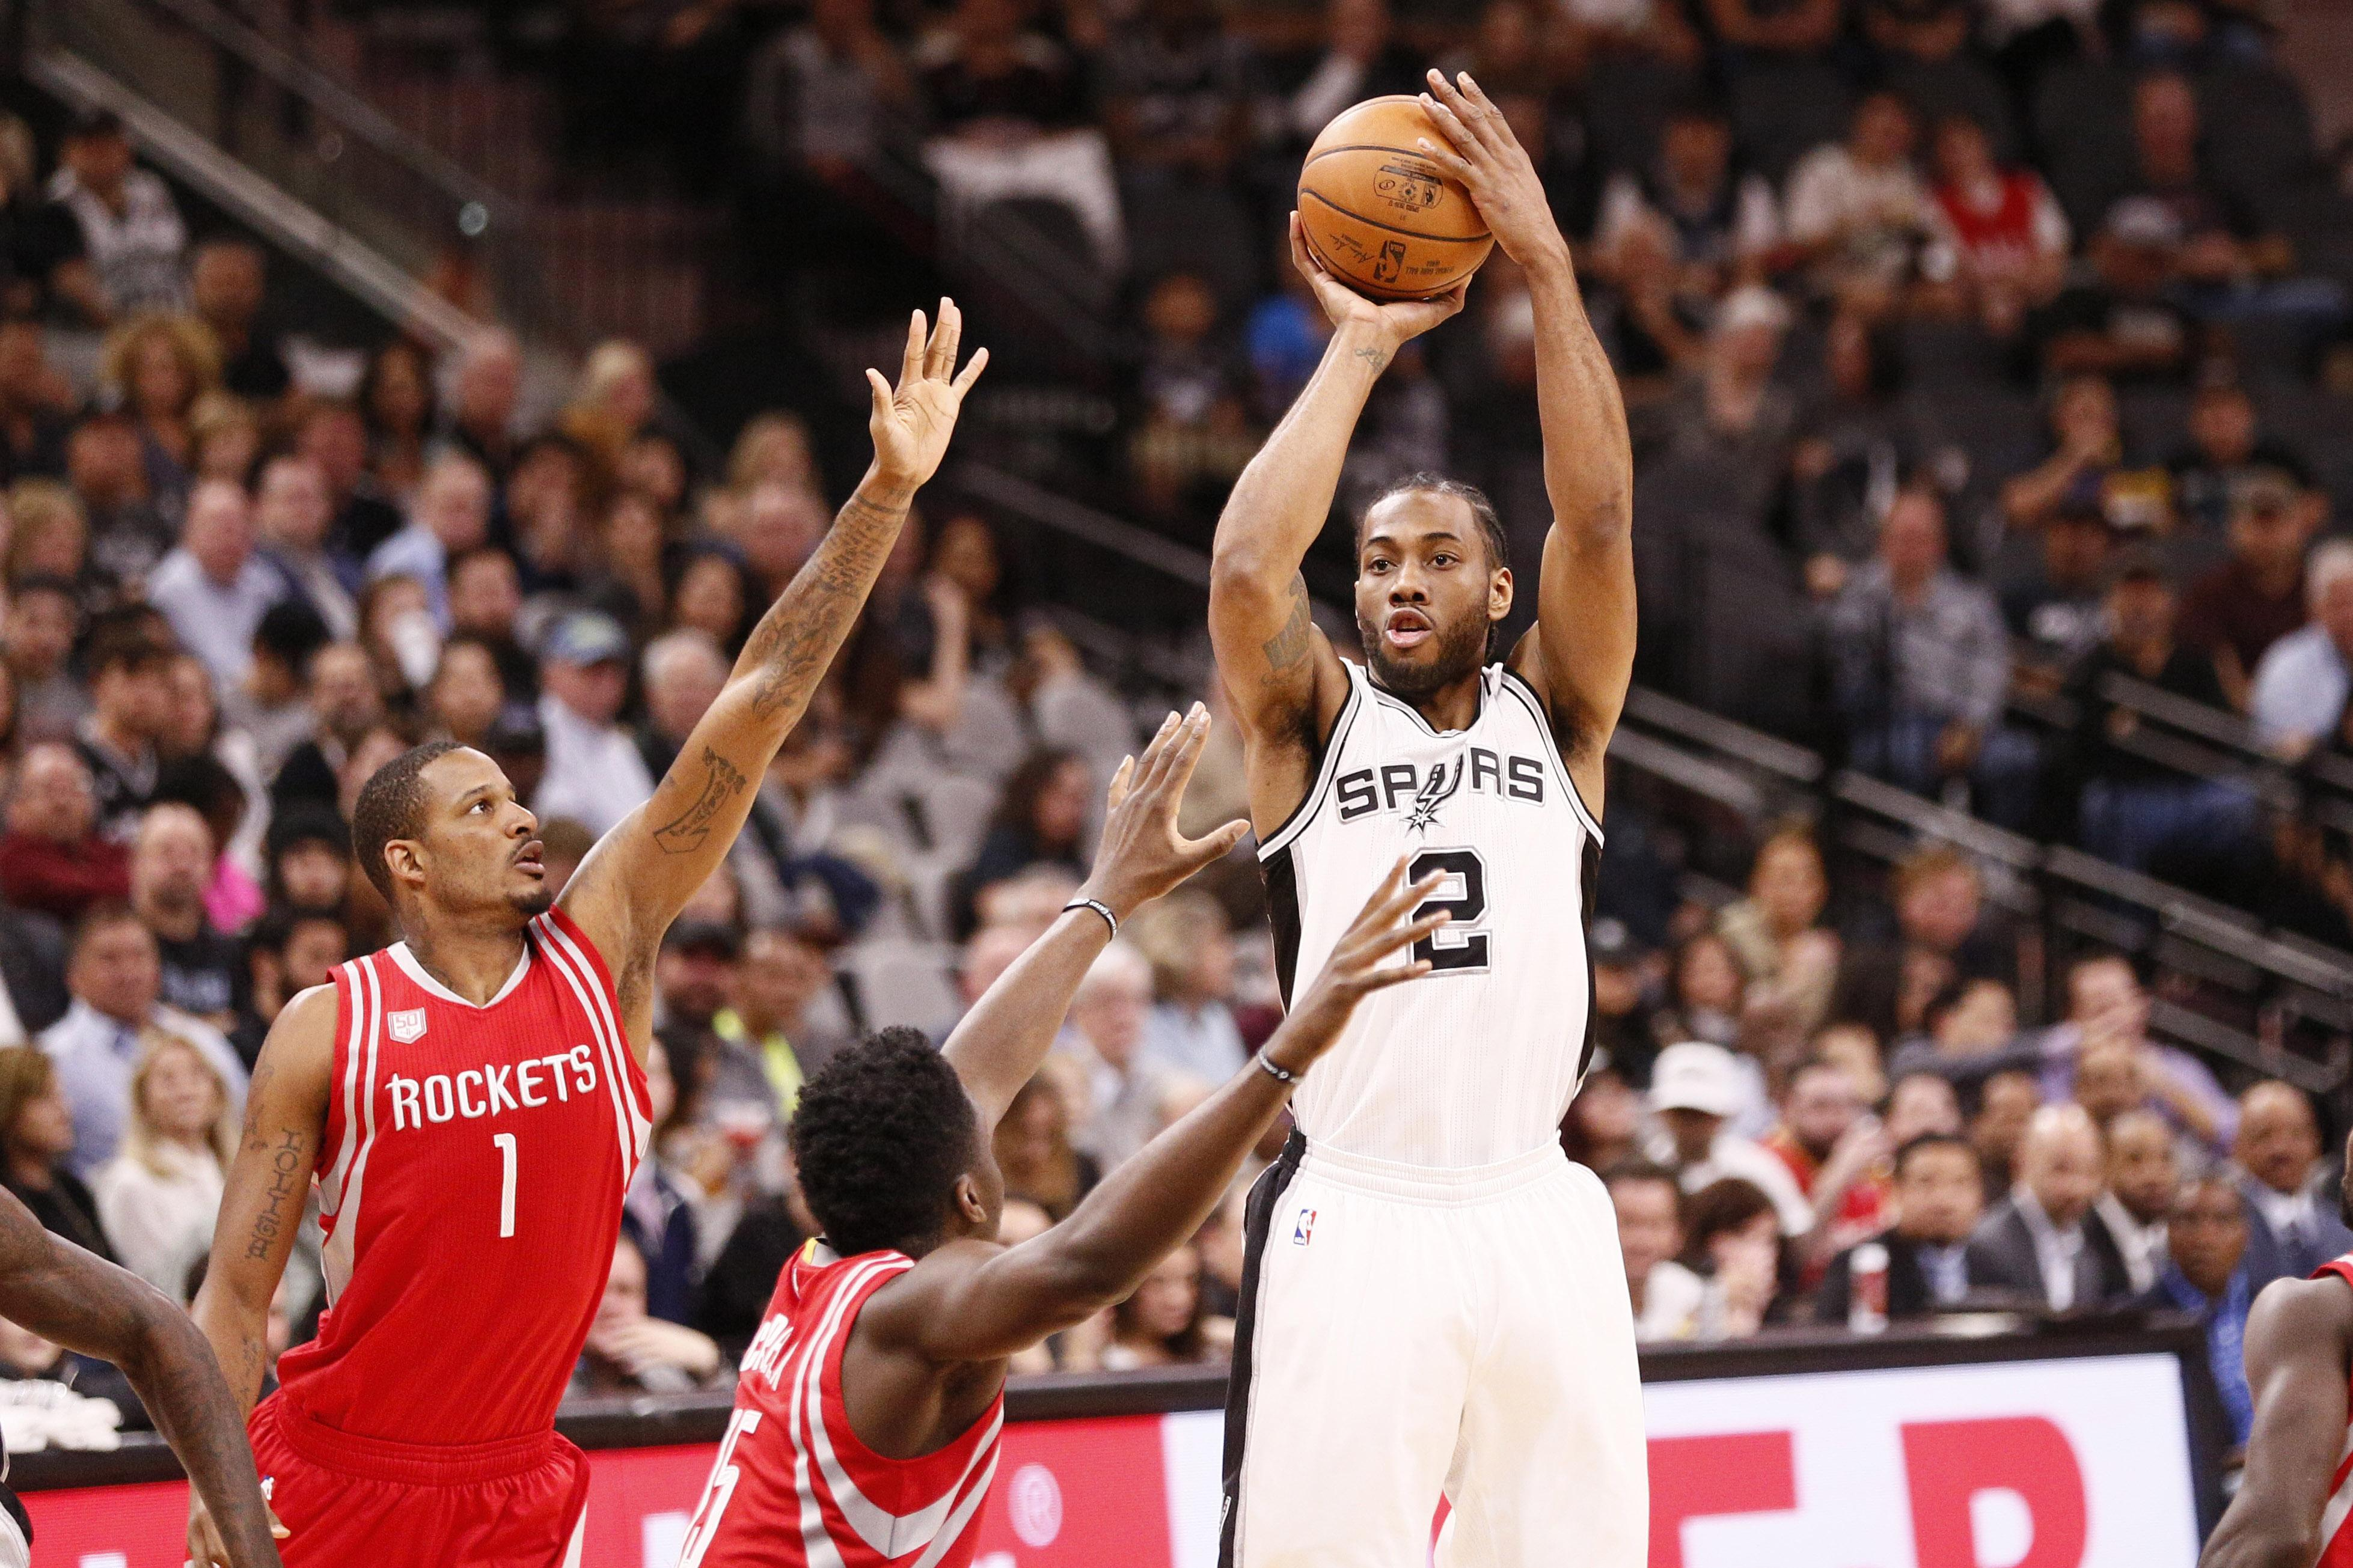 Kawhi Leonard was traded to the Toronto Raptors over the summer - with the Eastern Conference now wide open